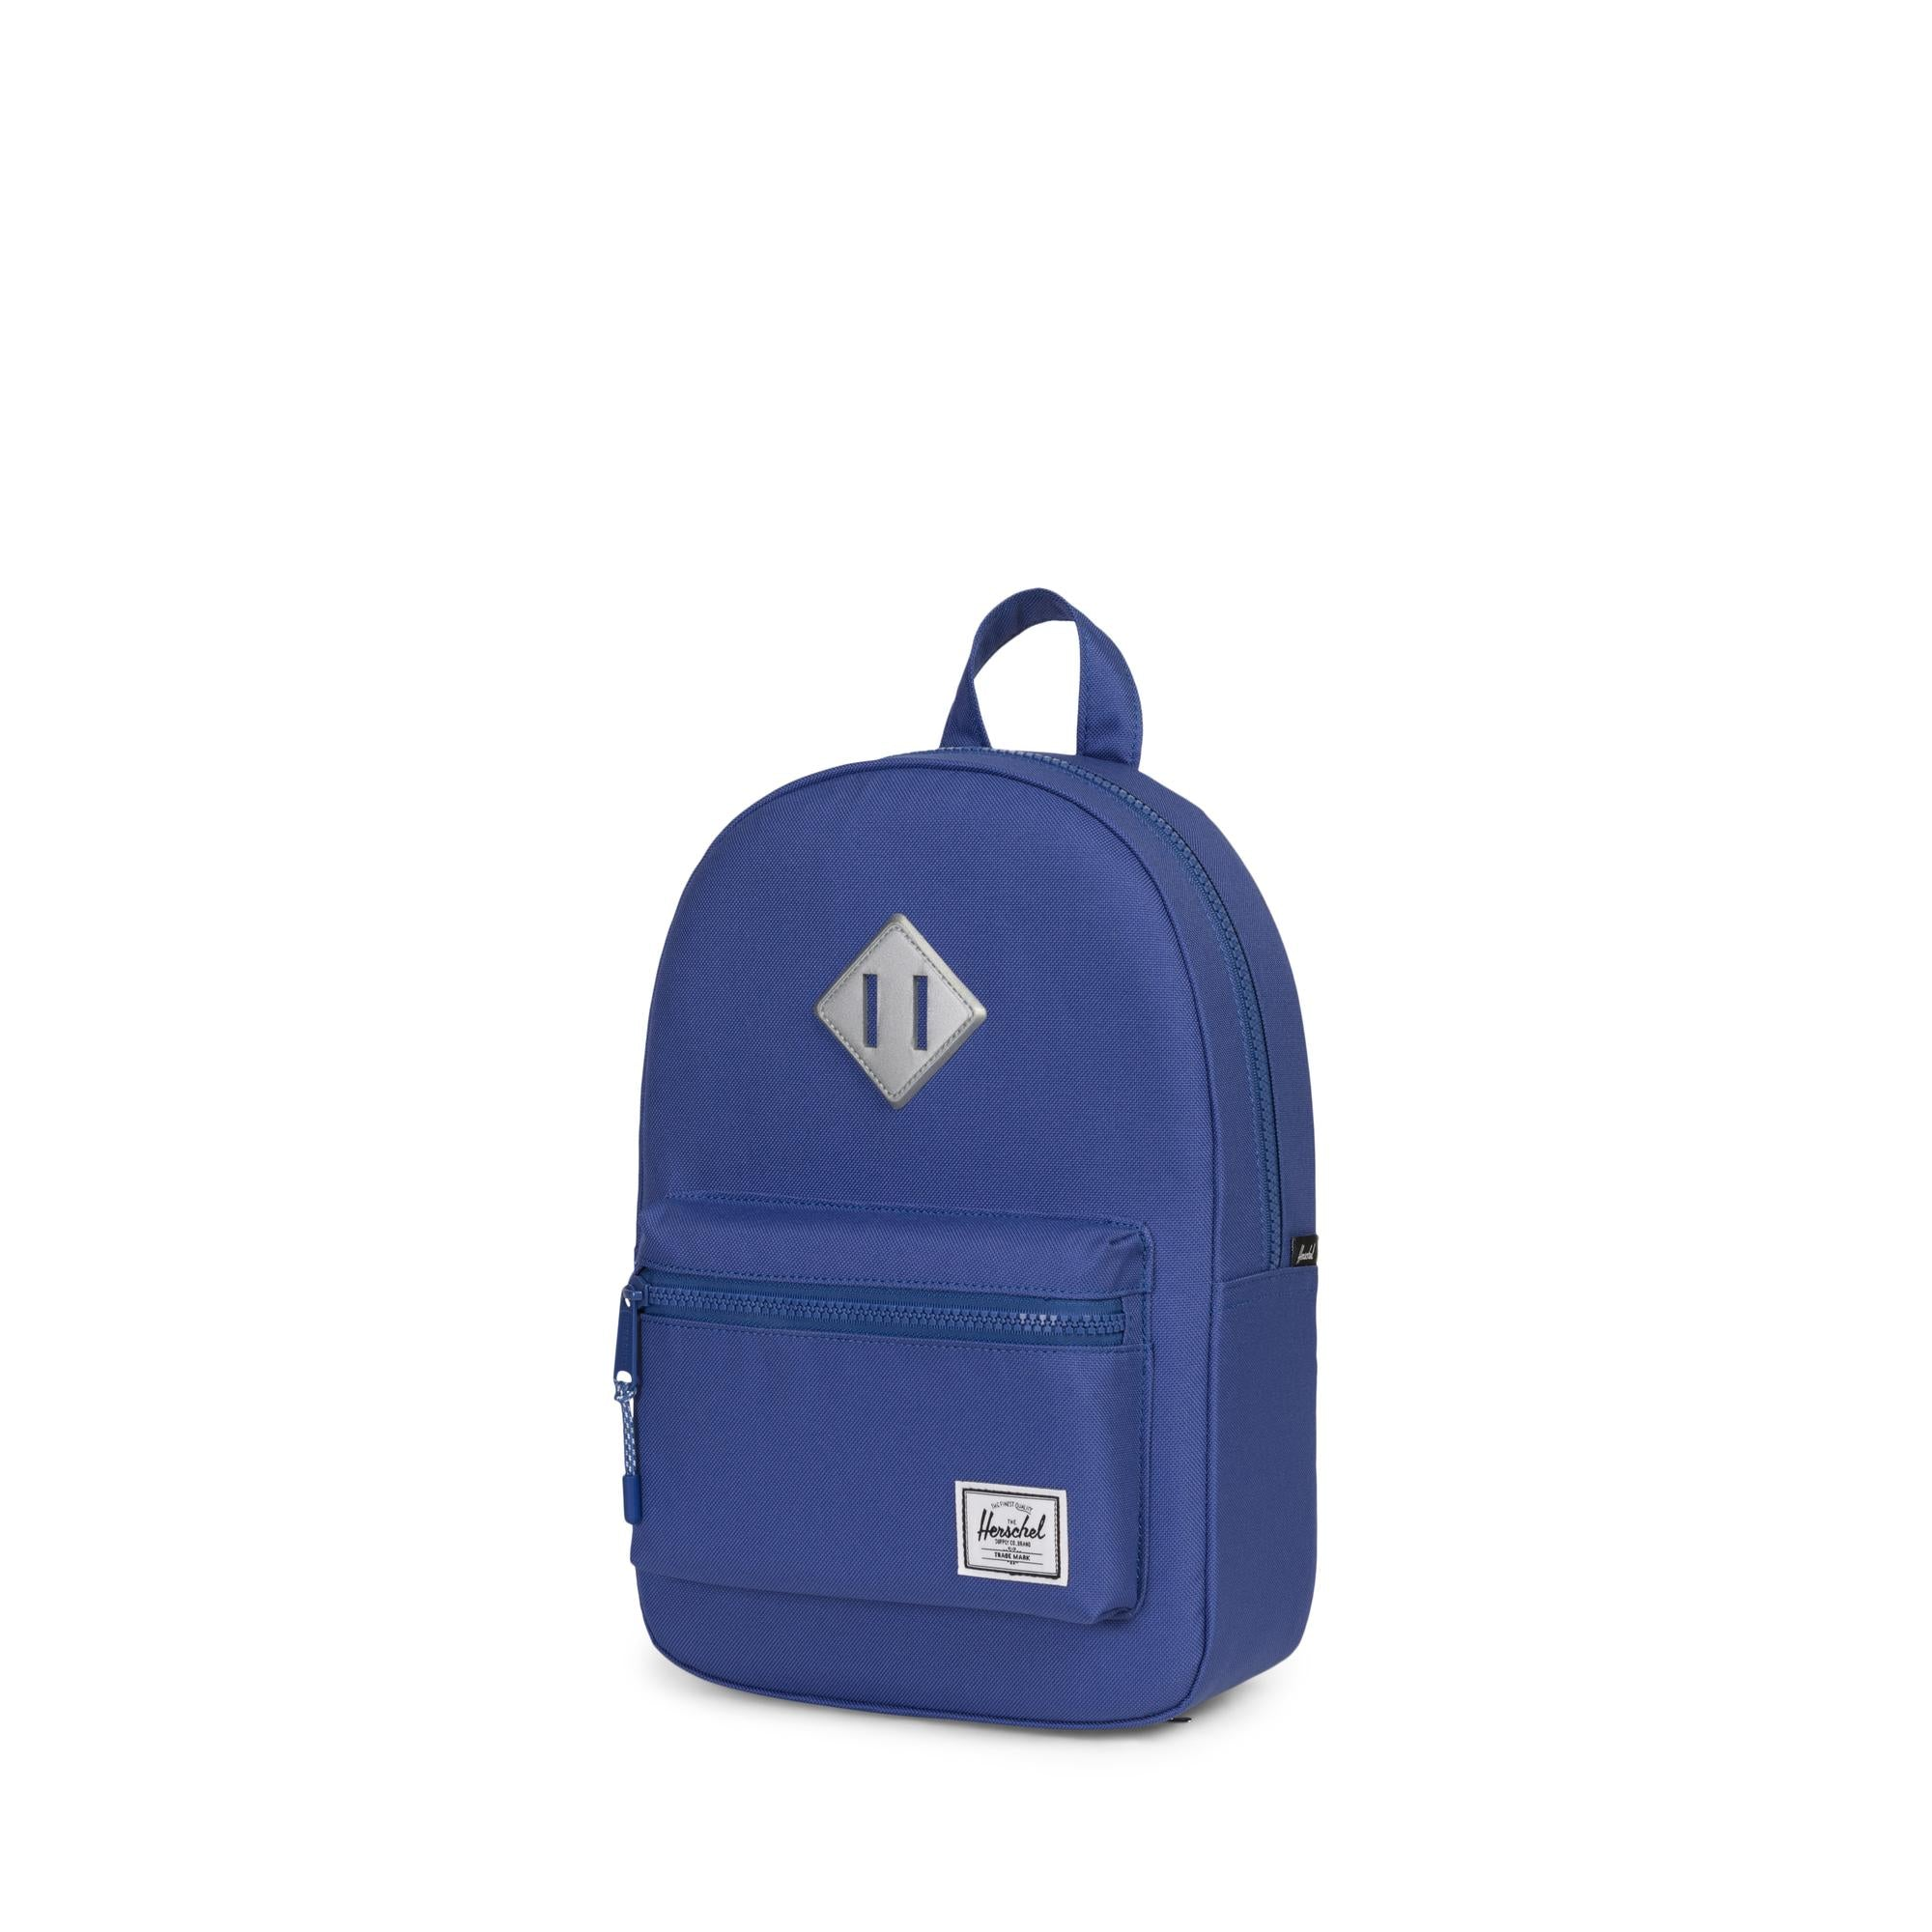 Herschel Heritage Kids Backpacks